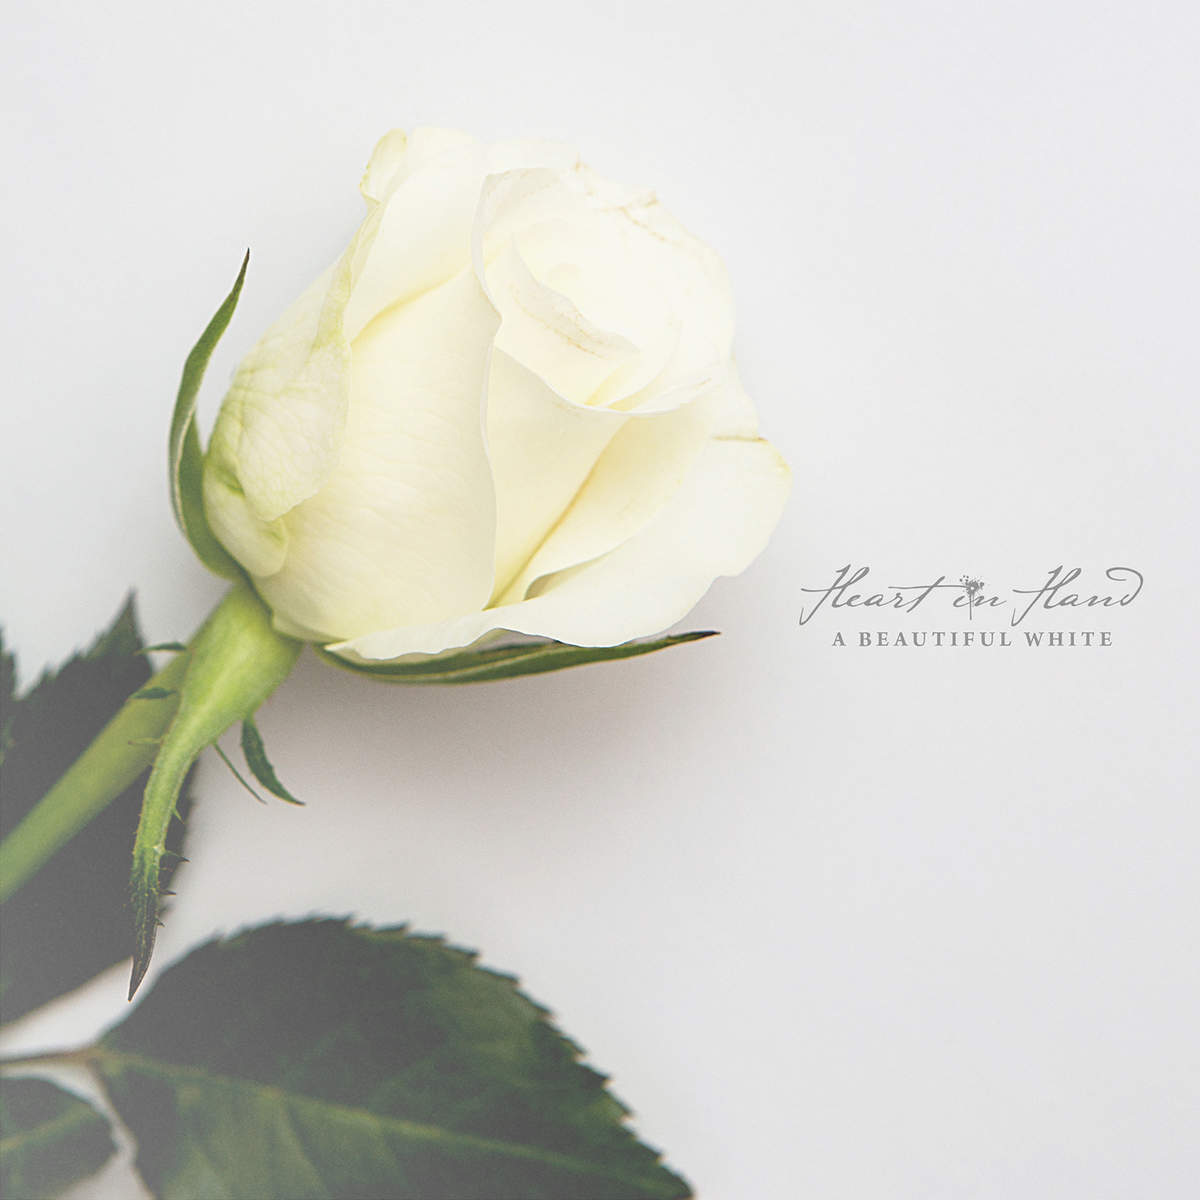 Heart In Hand - A Beautiful White [Full Album Preview] (2014)